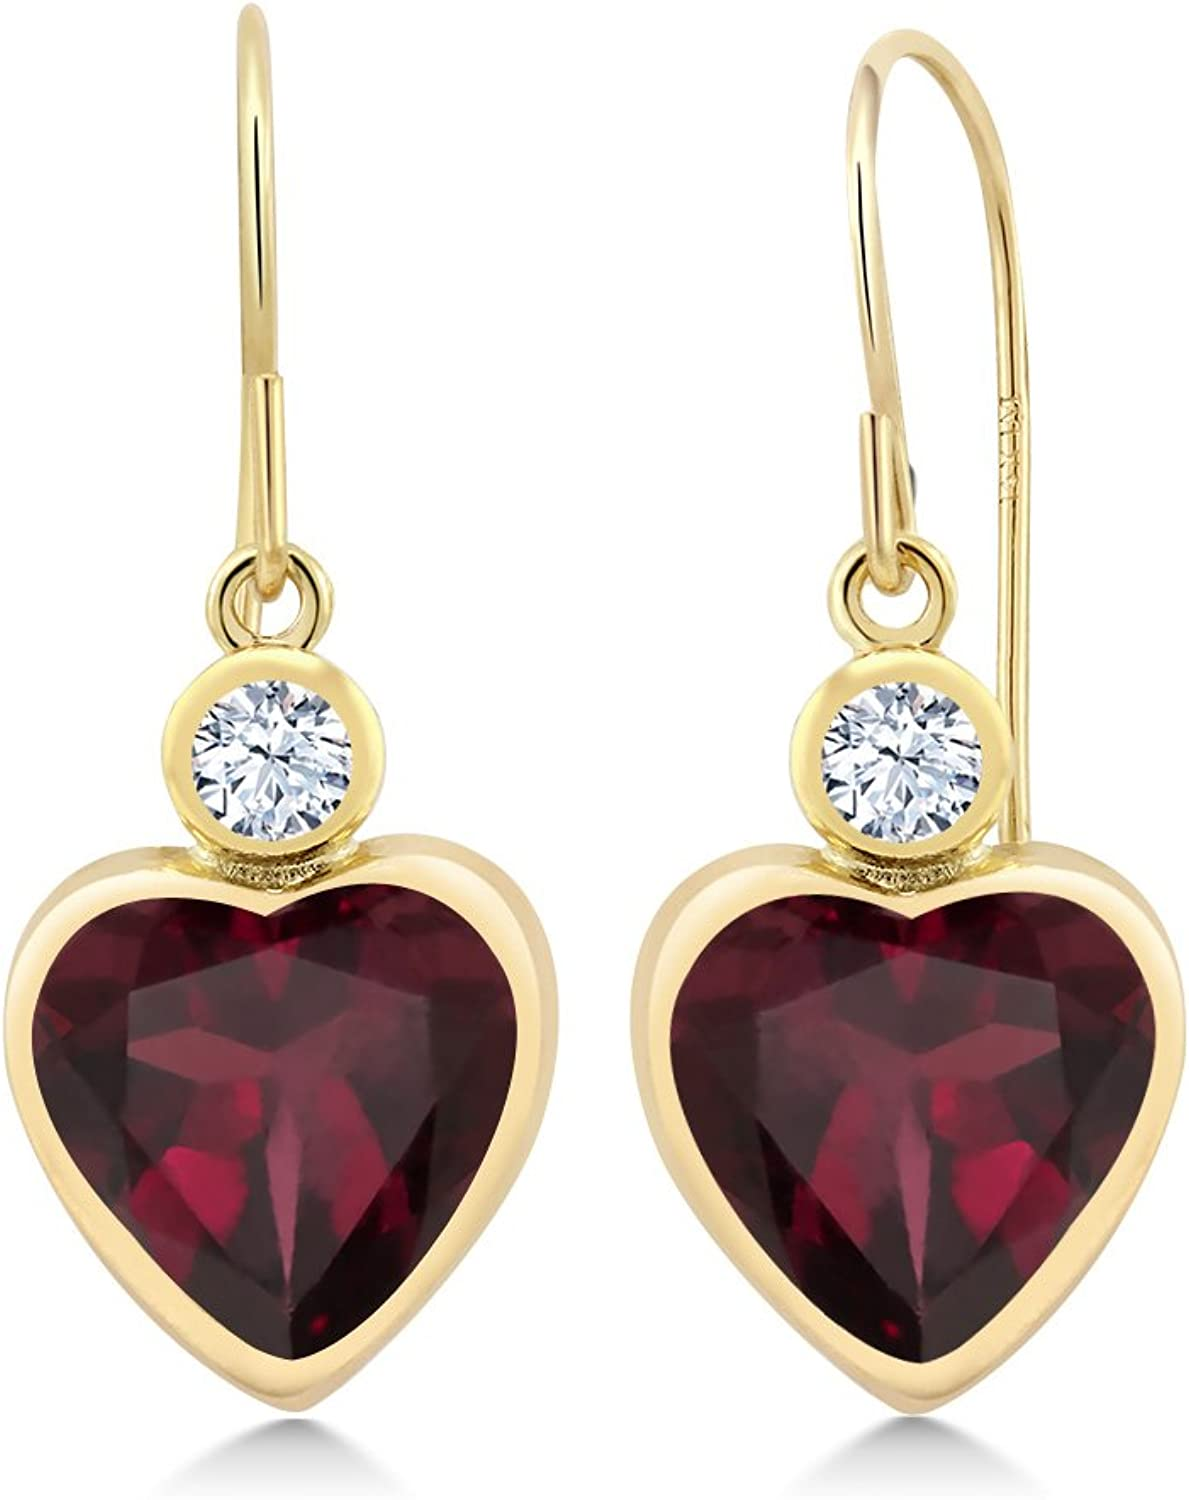 4.22 Ct Heart Shape Red Rhodolite Garnet 14K Yellow gold Earrings